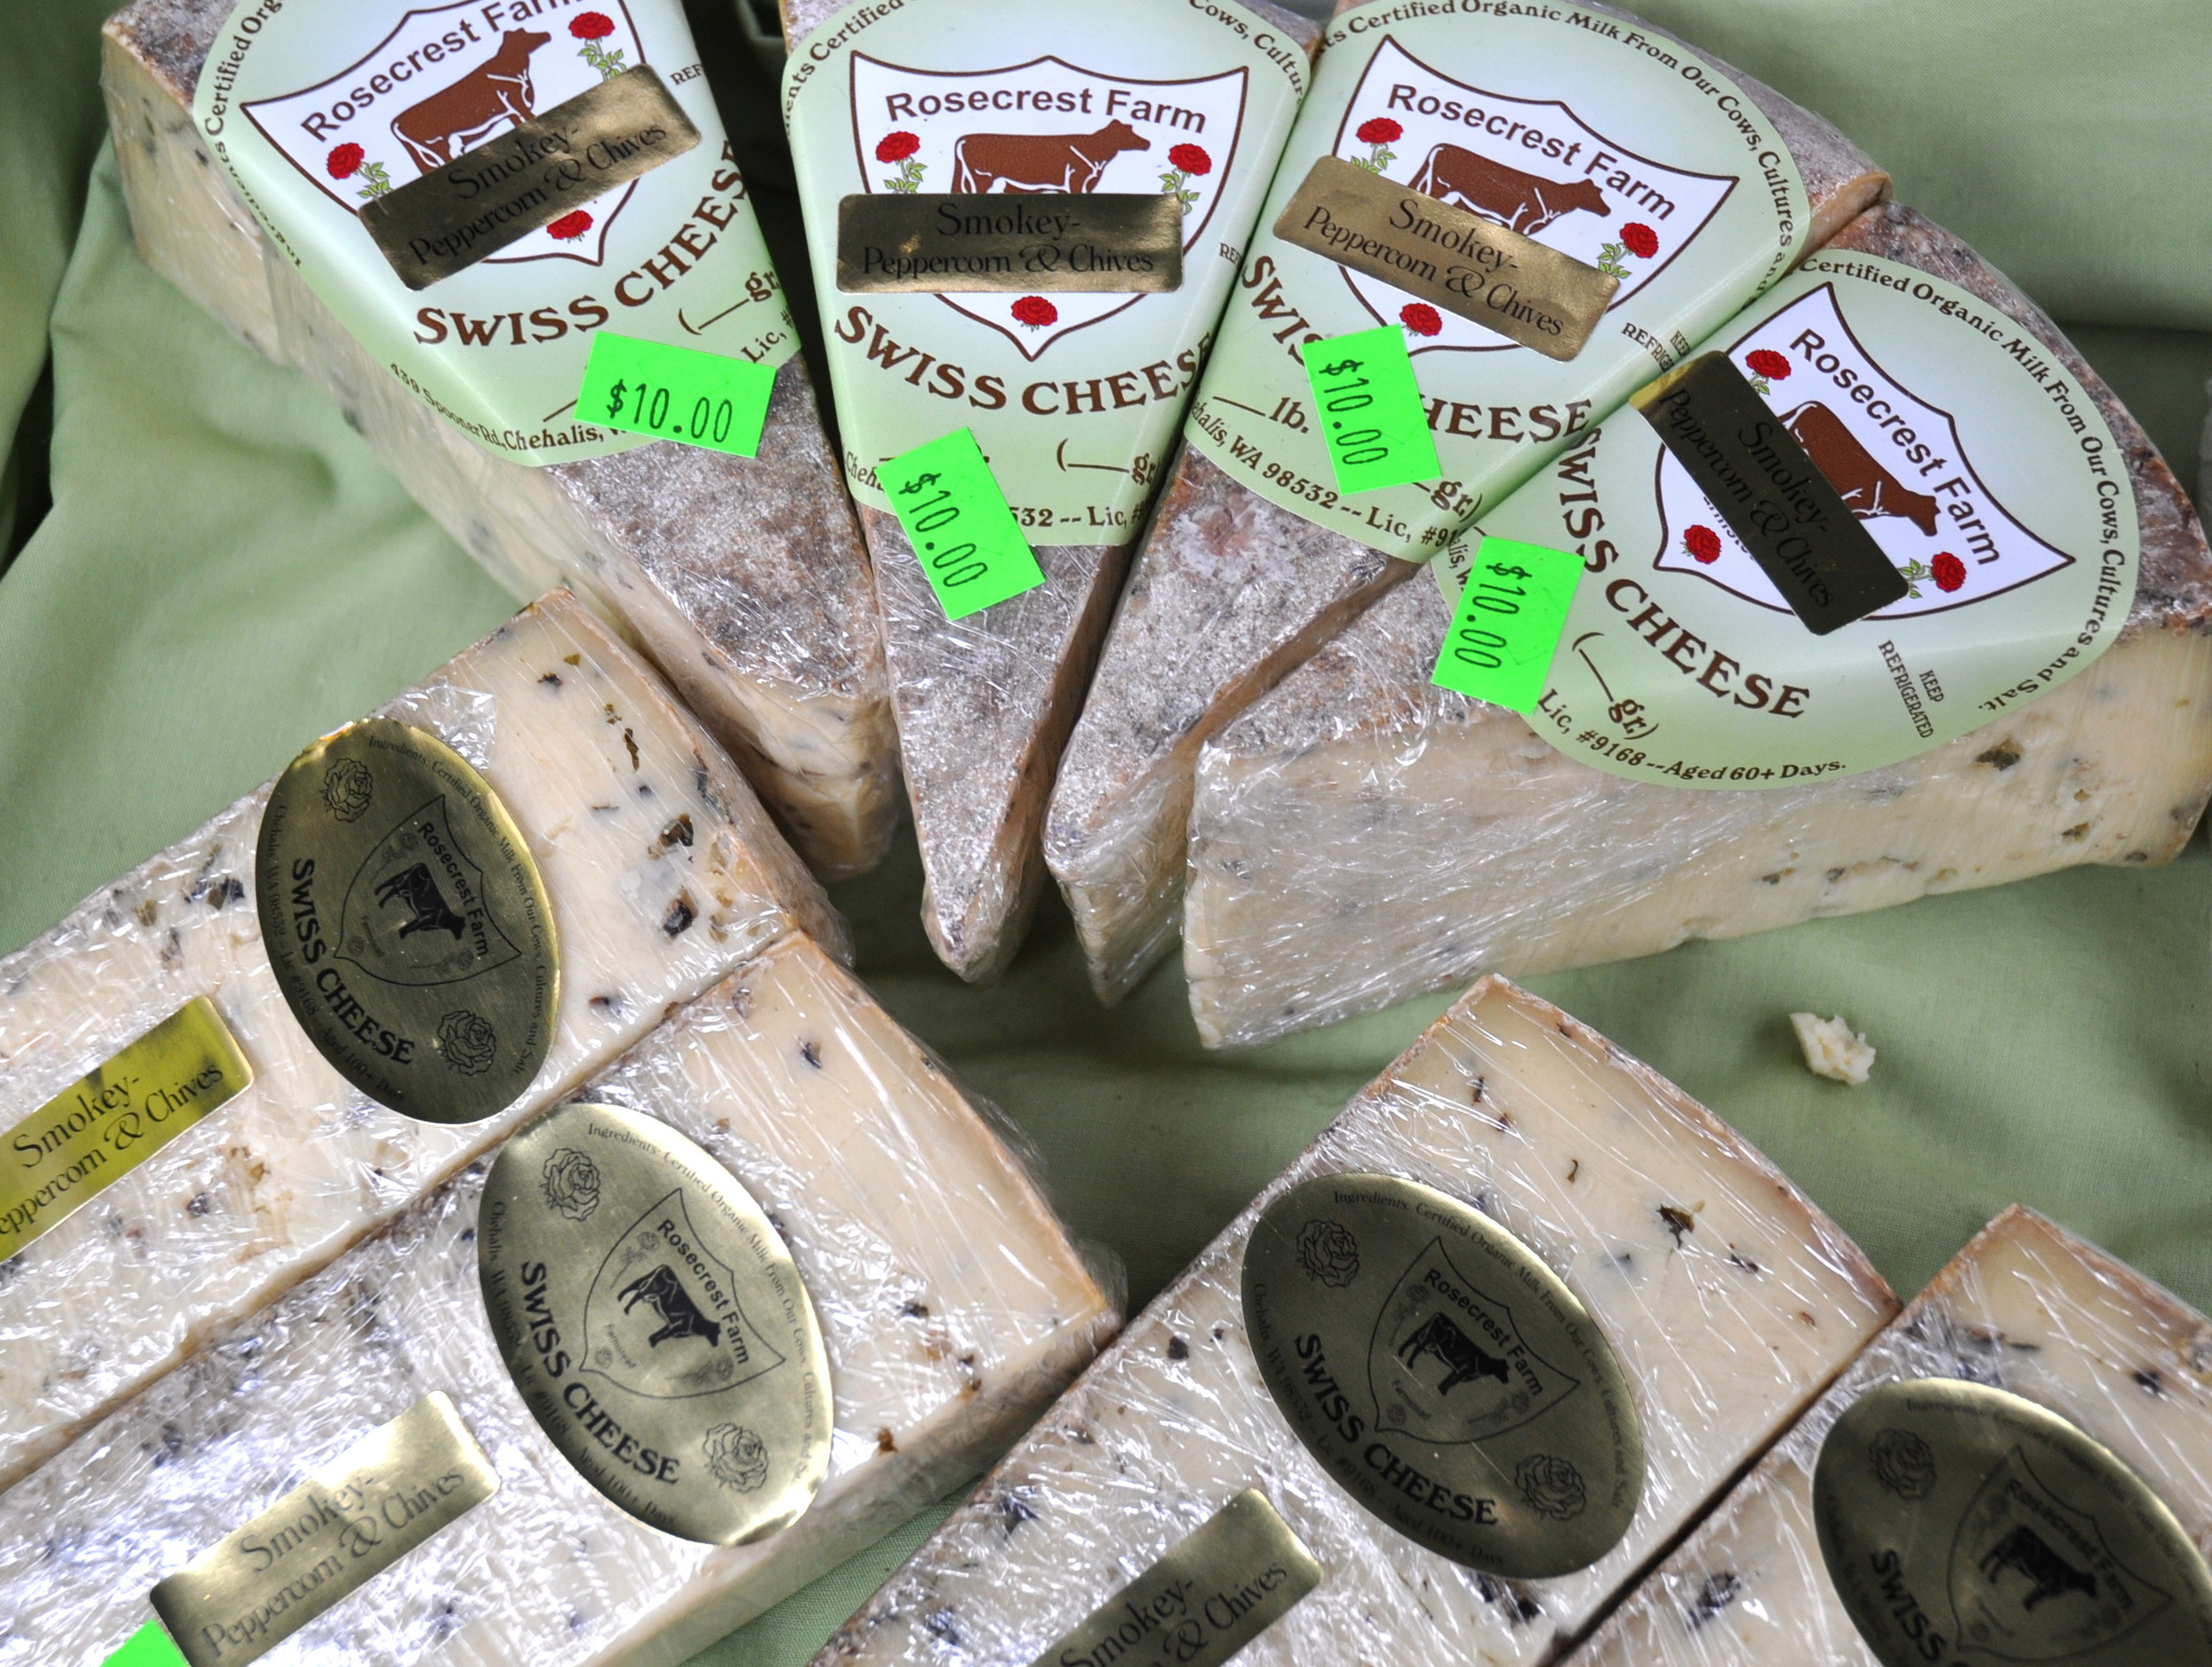 Smoky peppercorn & chives Swiss cheese from Rosecrest Farm. Photo copyright 2013 by Zachary D. Lyons.